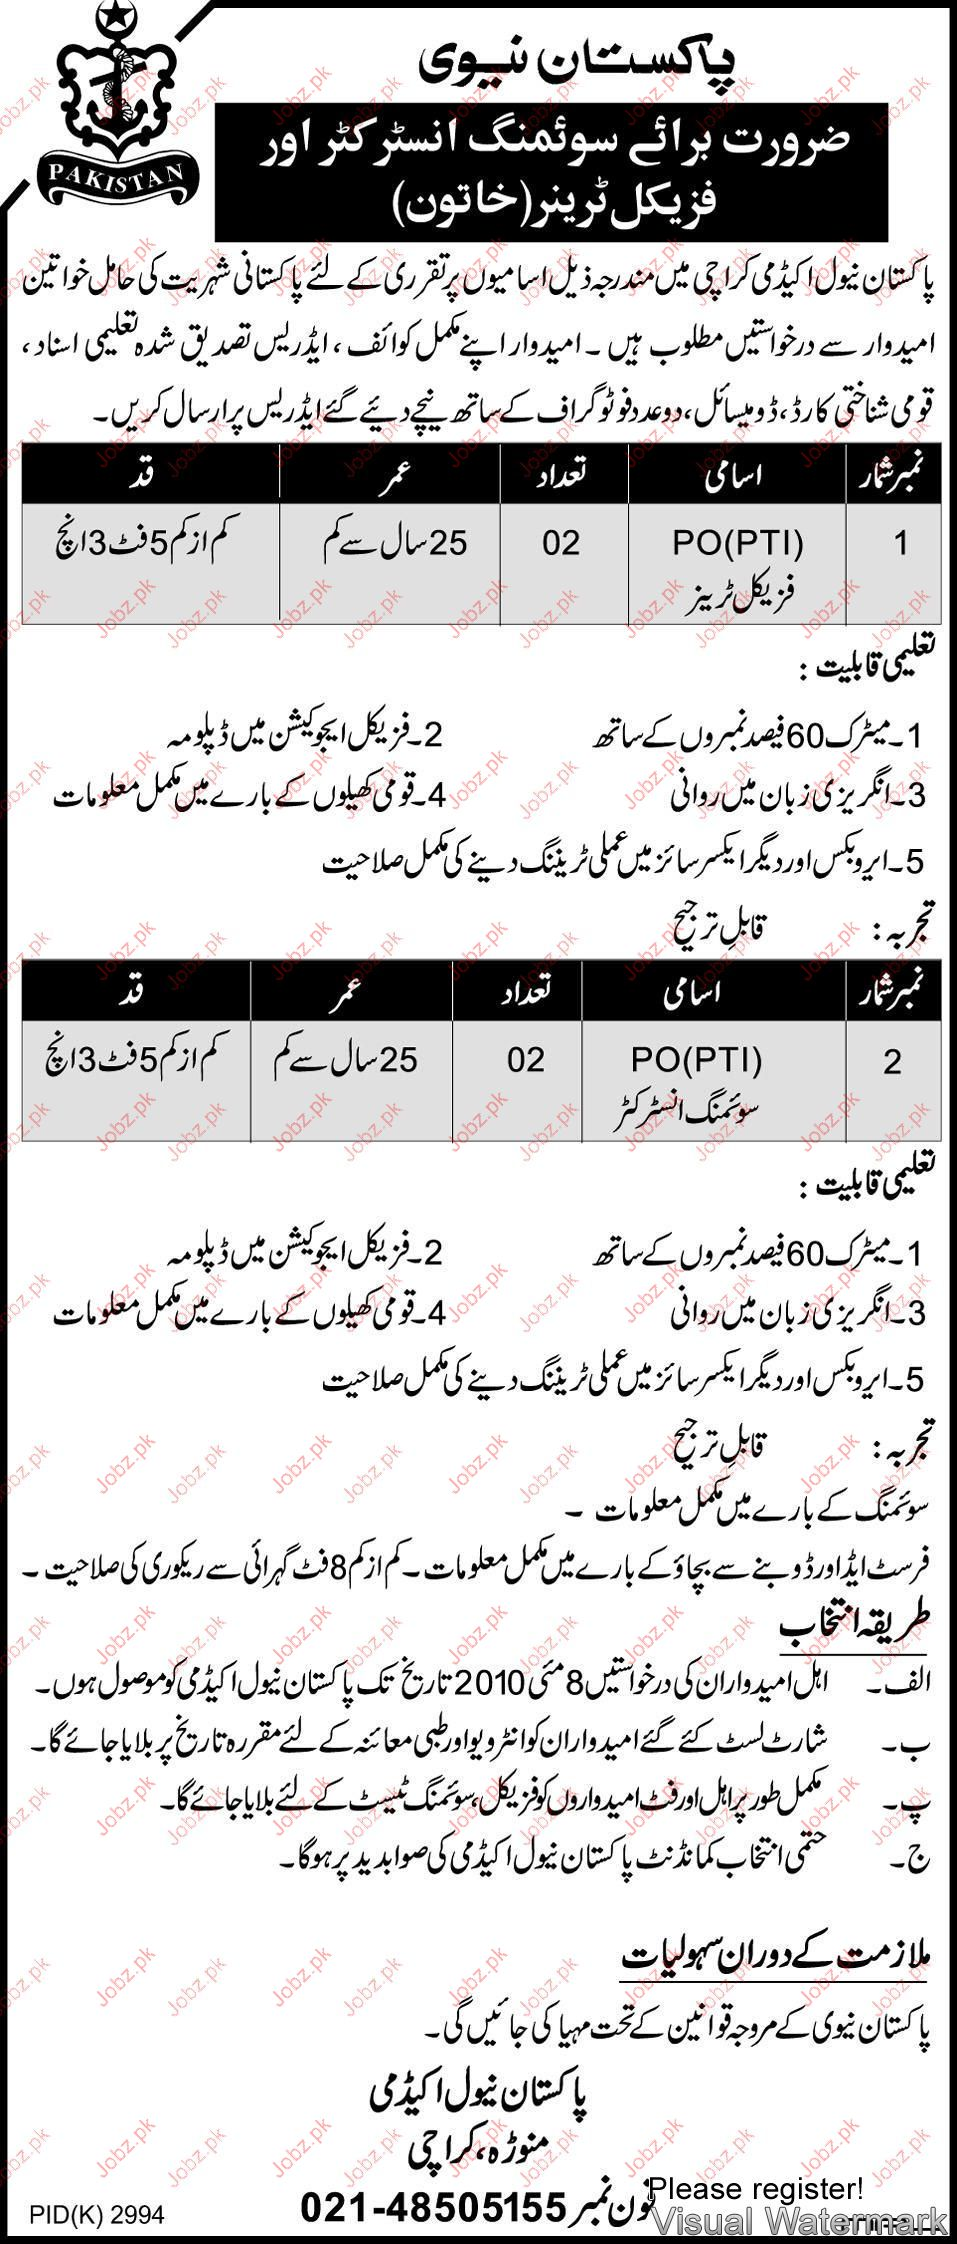 Swimming Instructor Required in Pak Navy